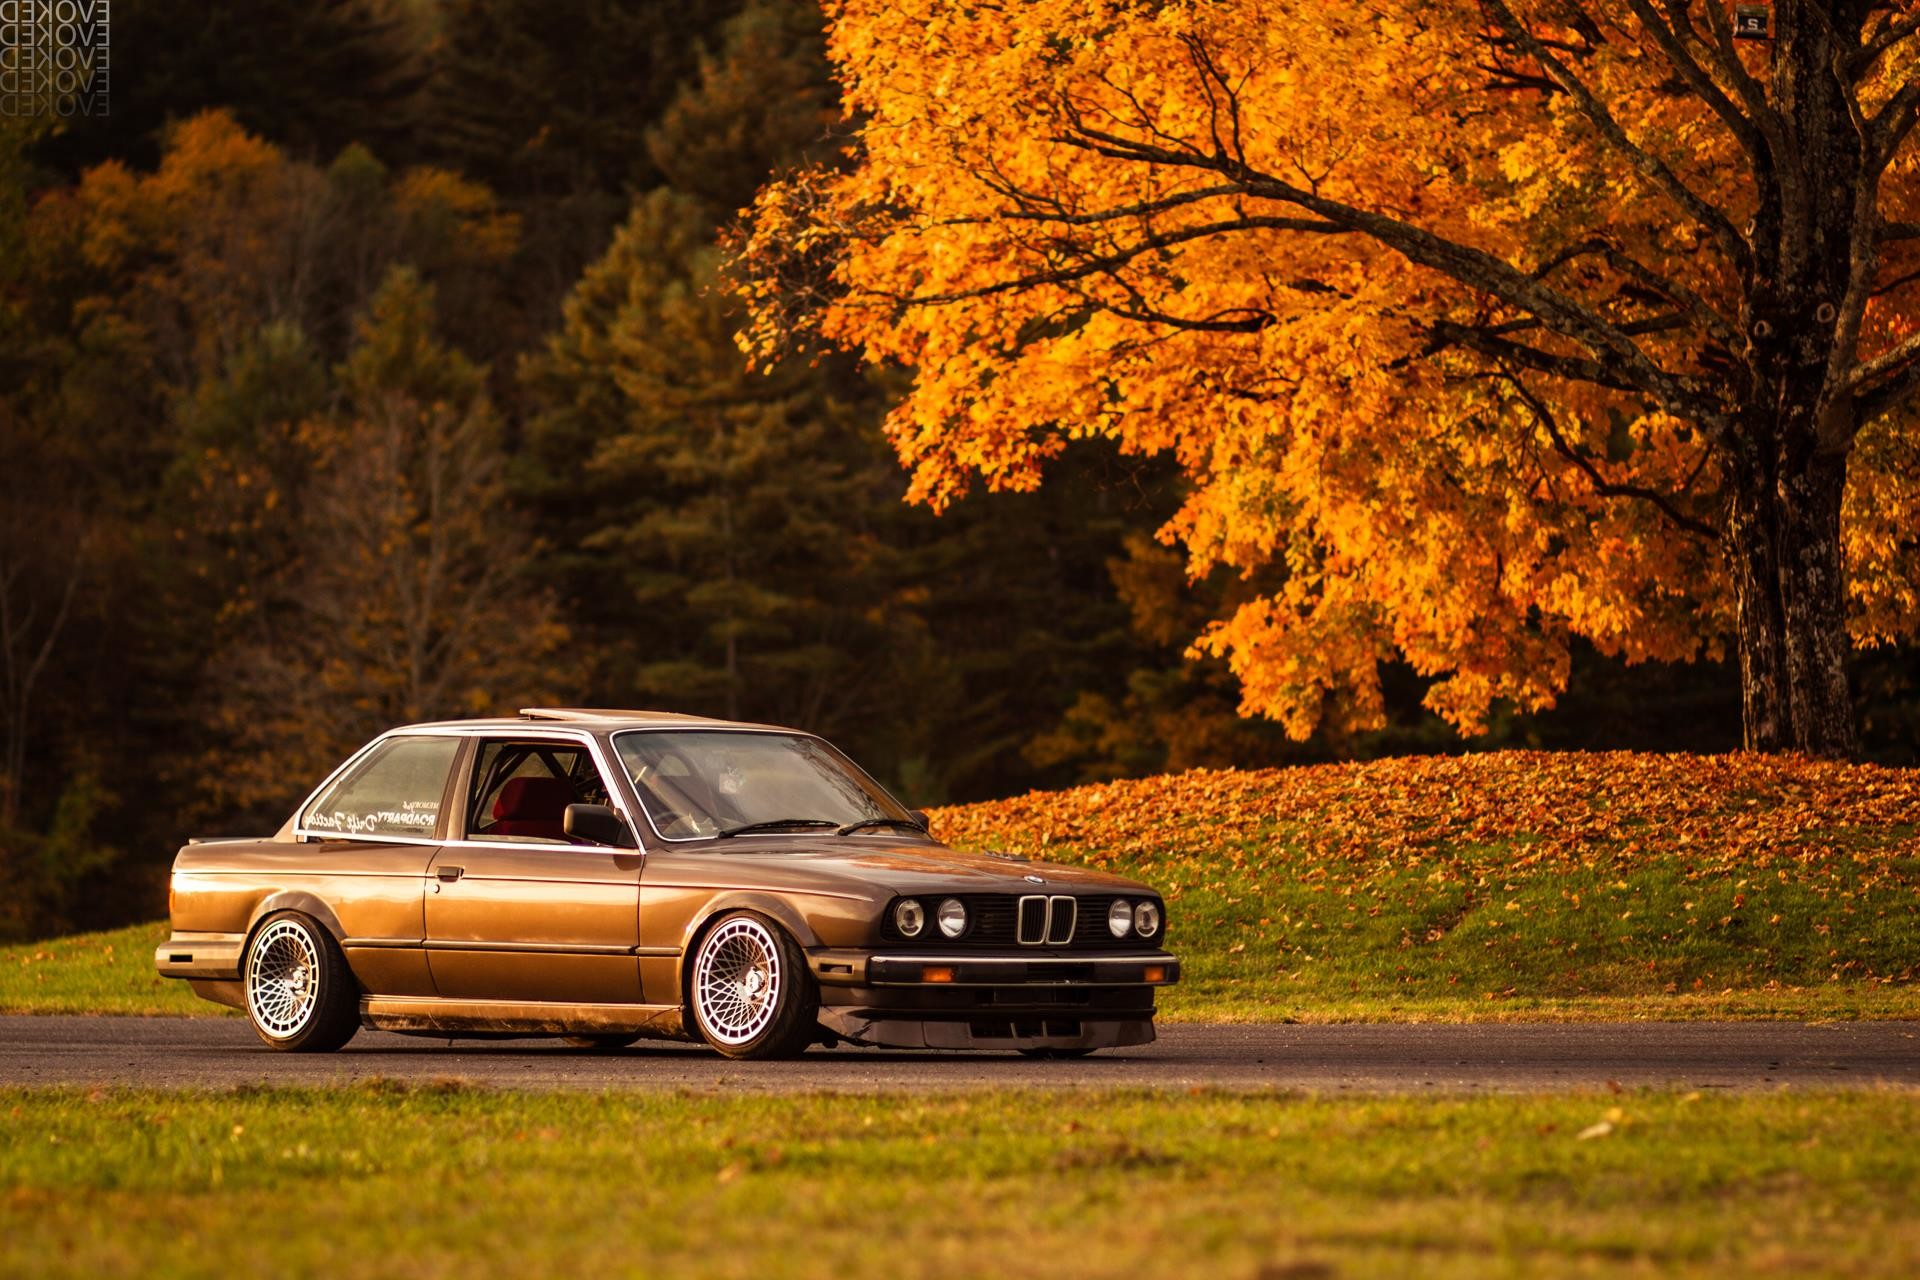 1920x1280 Download Bmw E30 Photos Free bmw e30 wallpaper